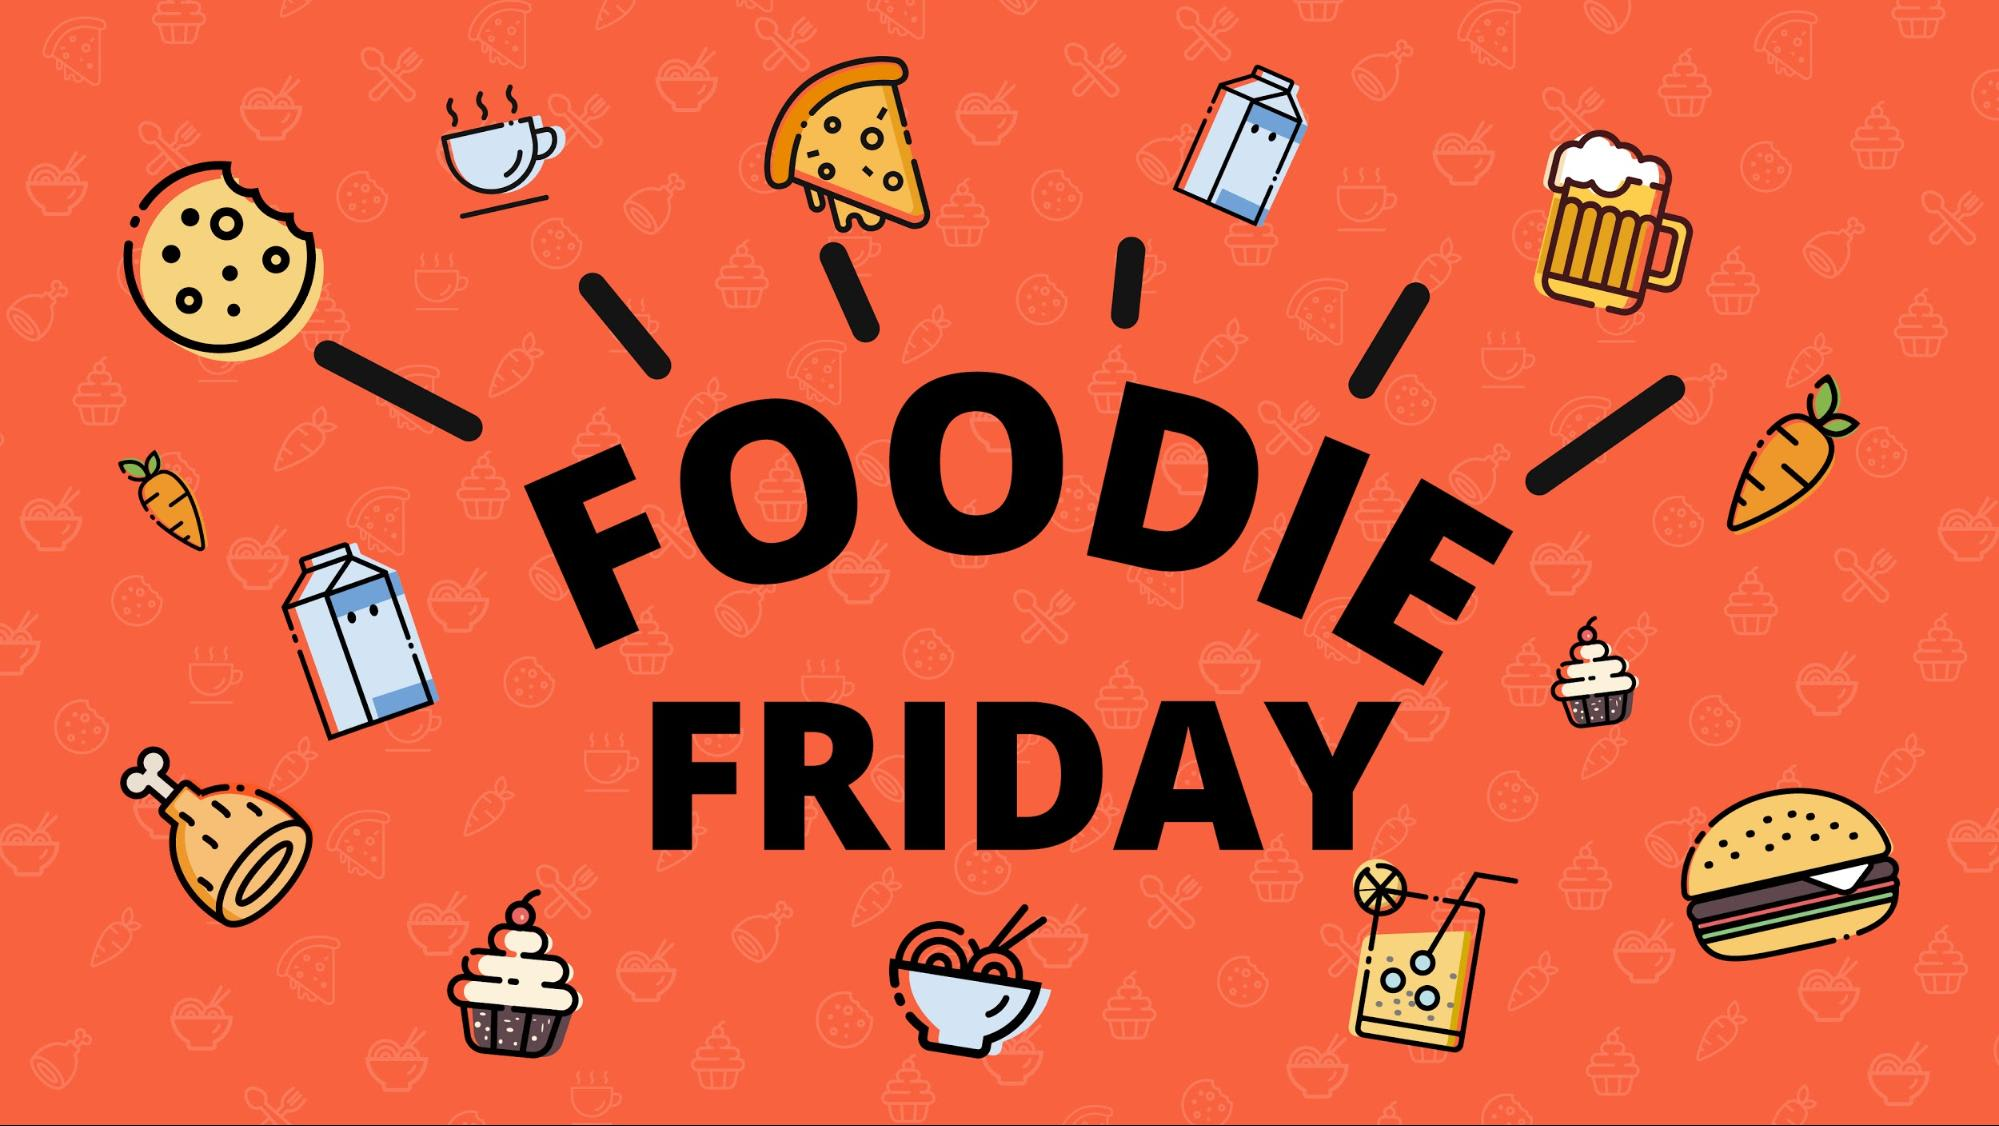 Foodie Friday 19 Sep Cover Image